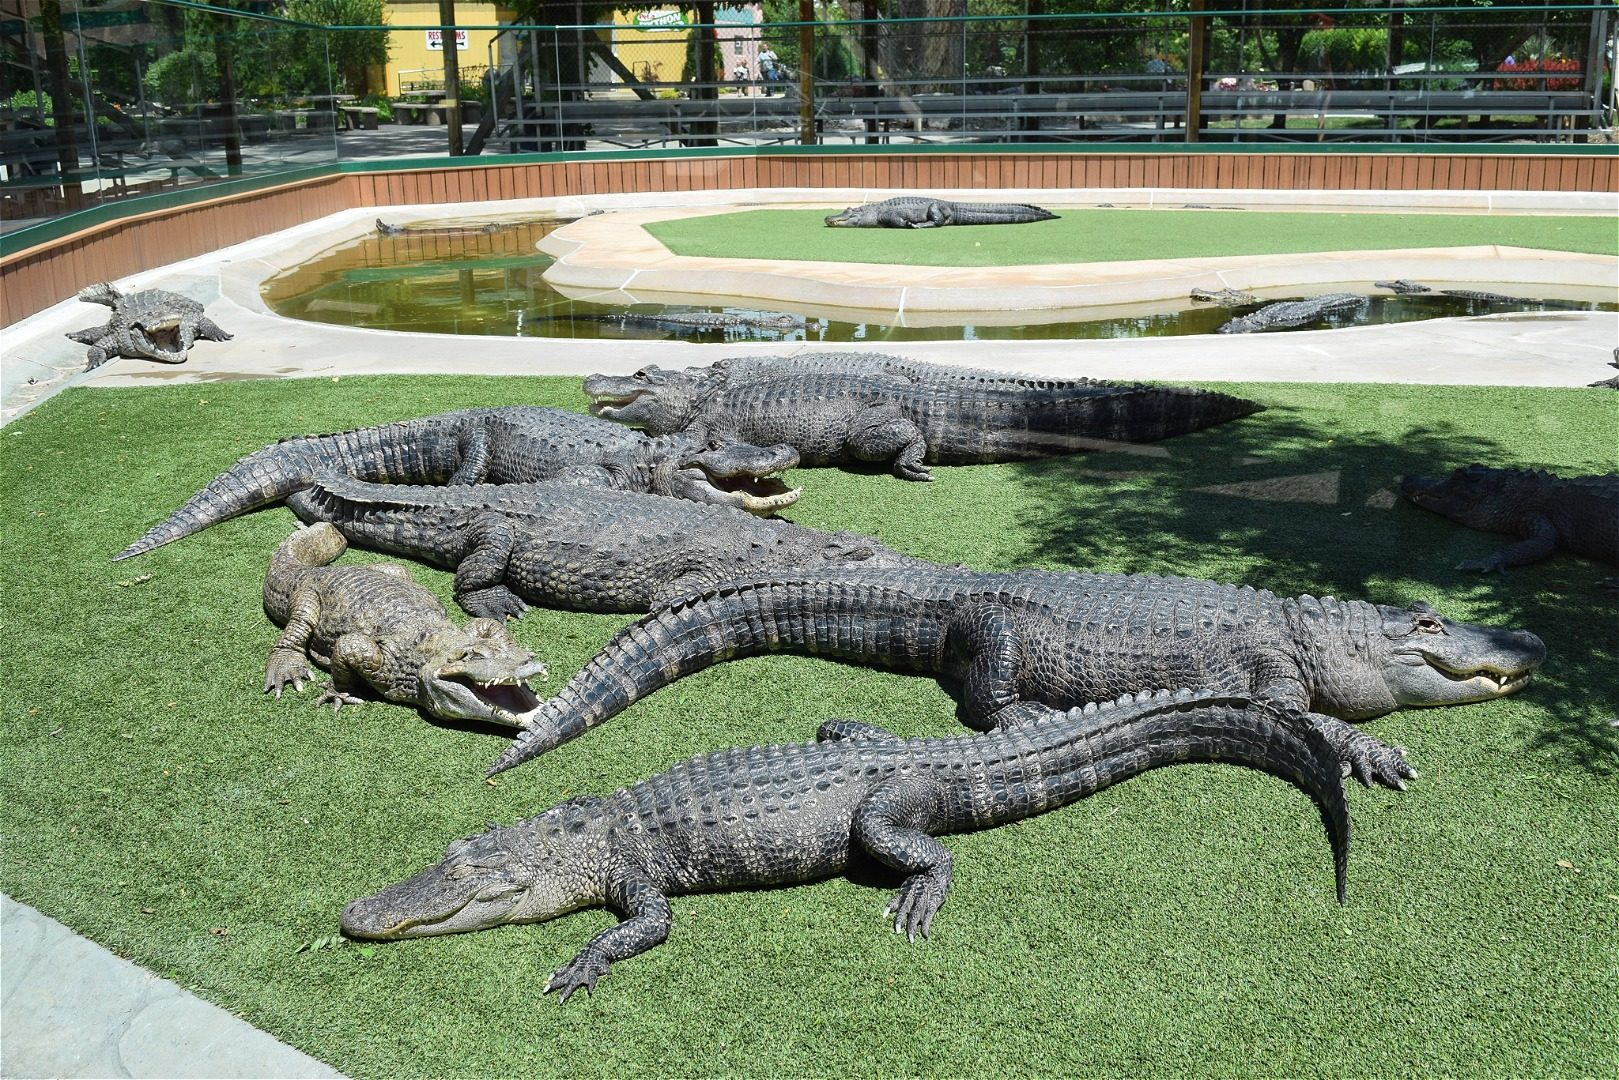 Reptile Gardens near Rapid City Hotels